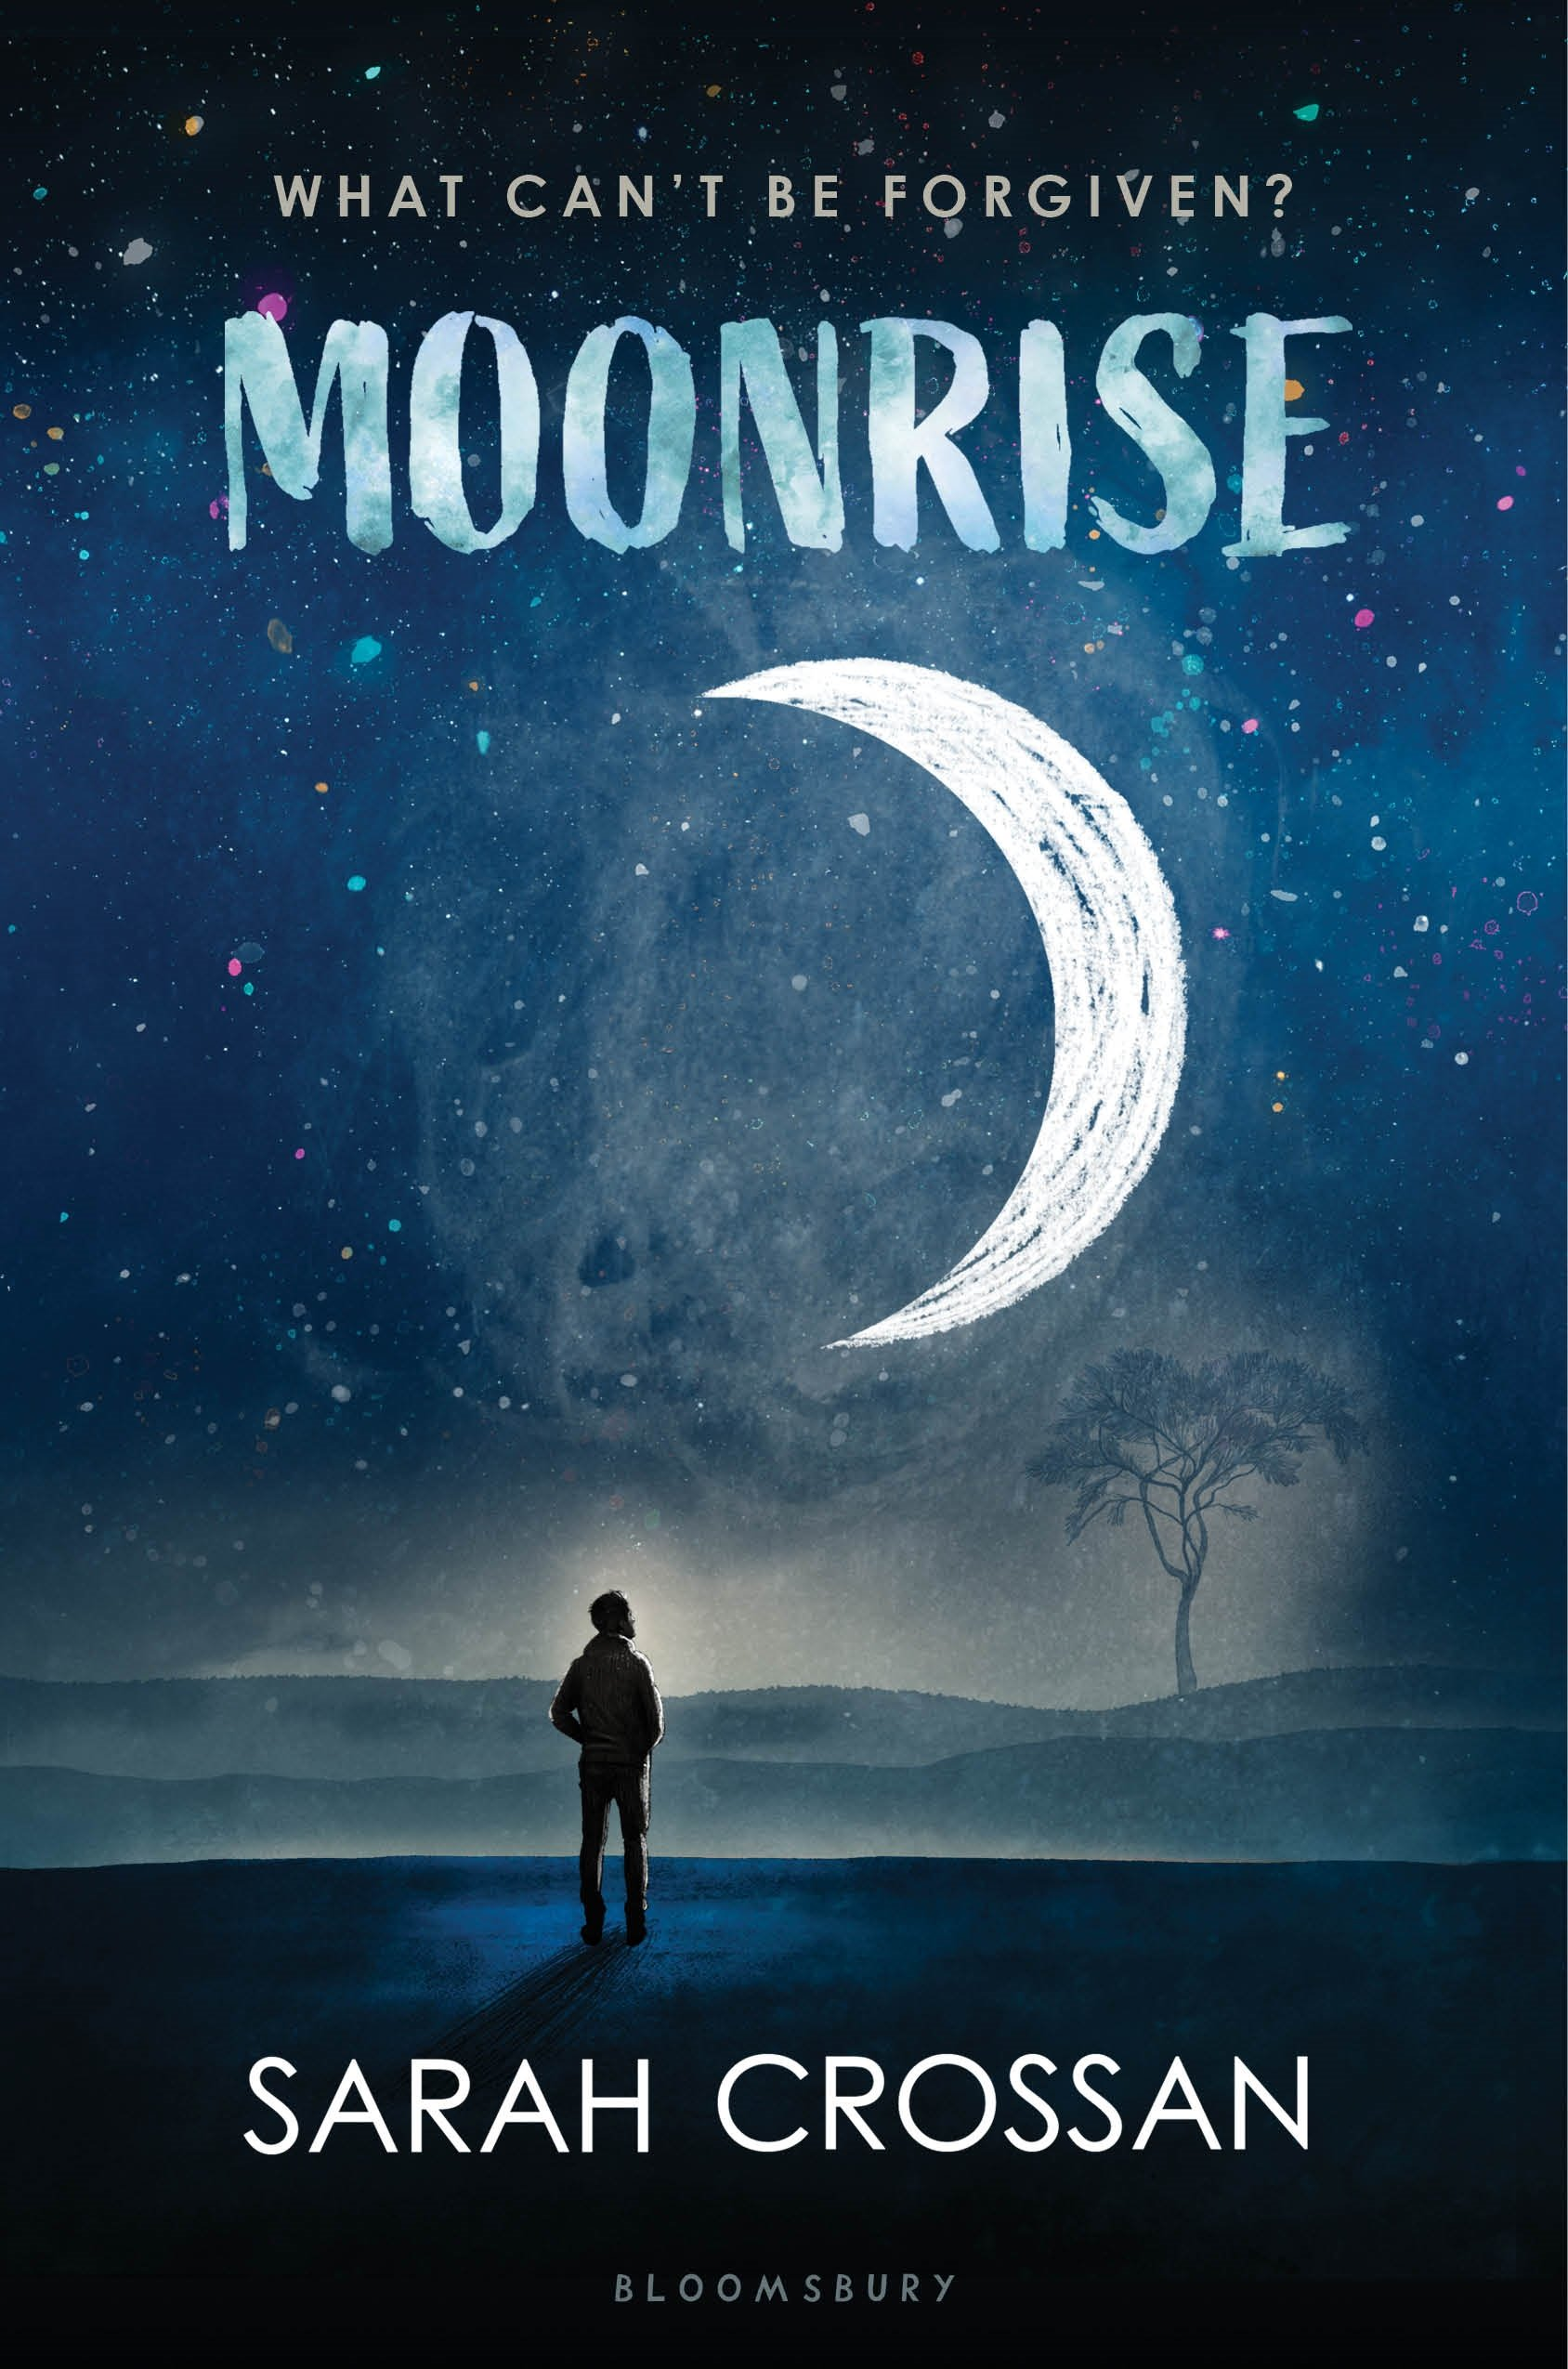 Moonrise by Sarah Crossan | SLJ Review